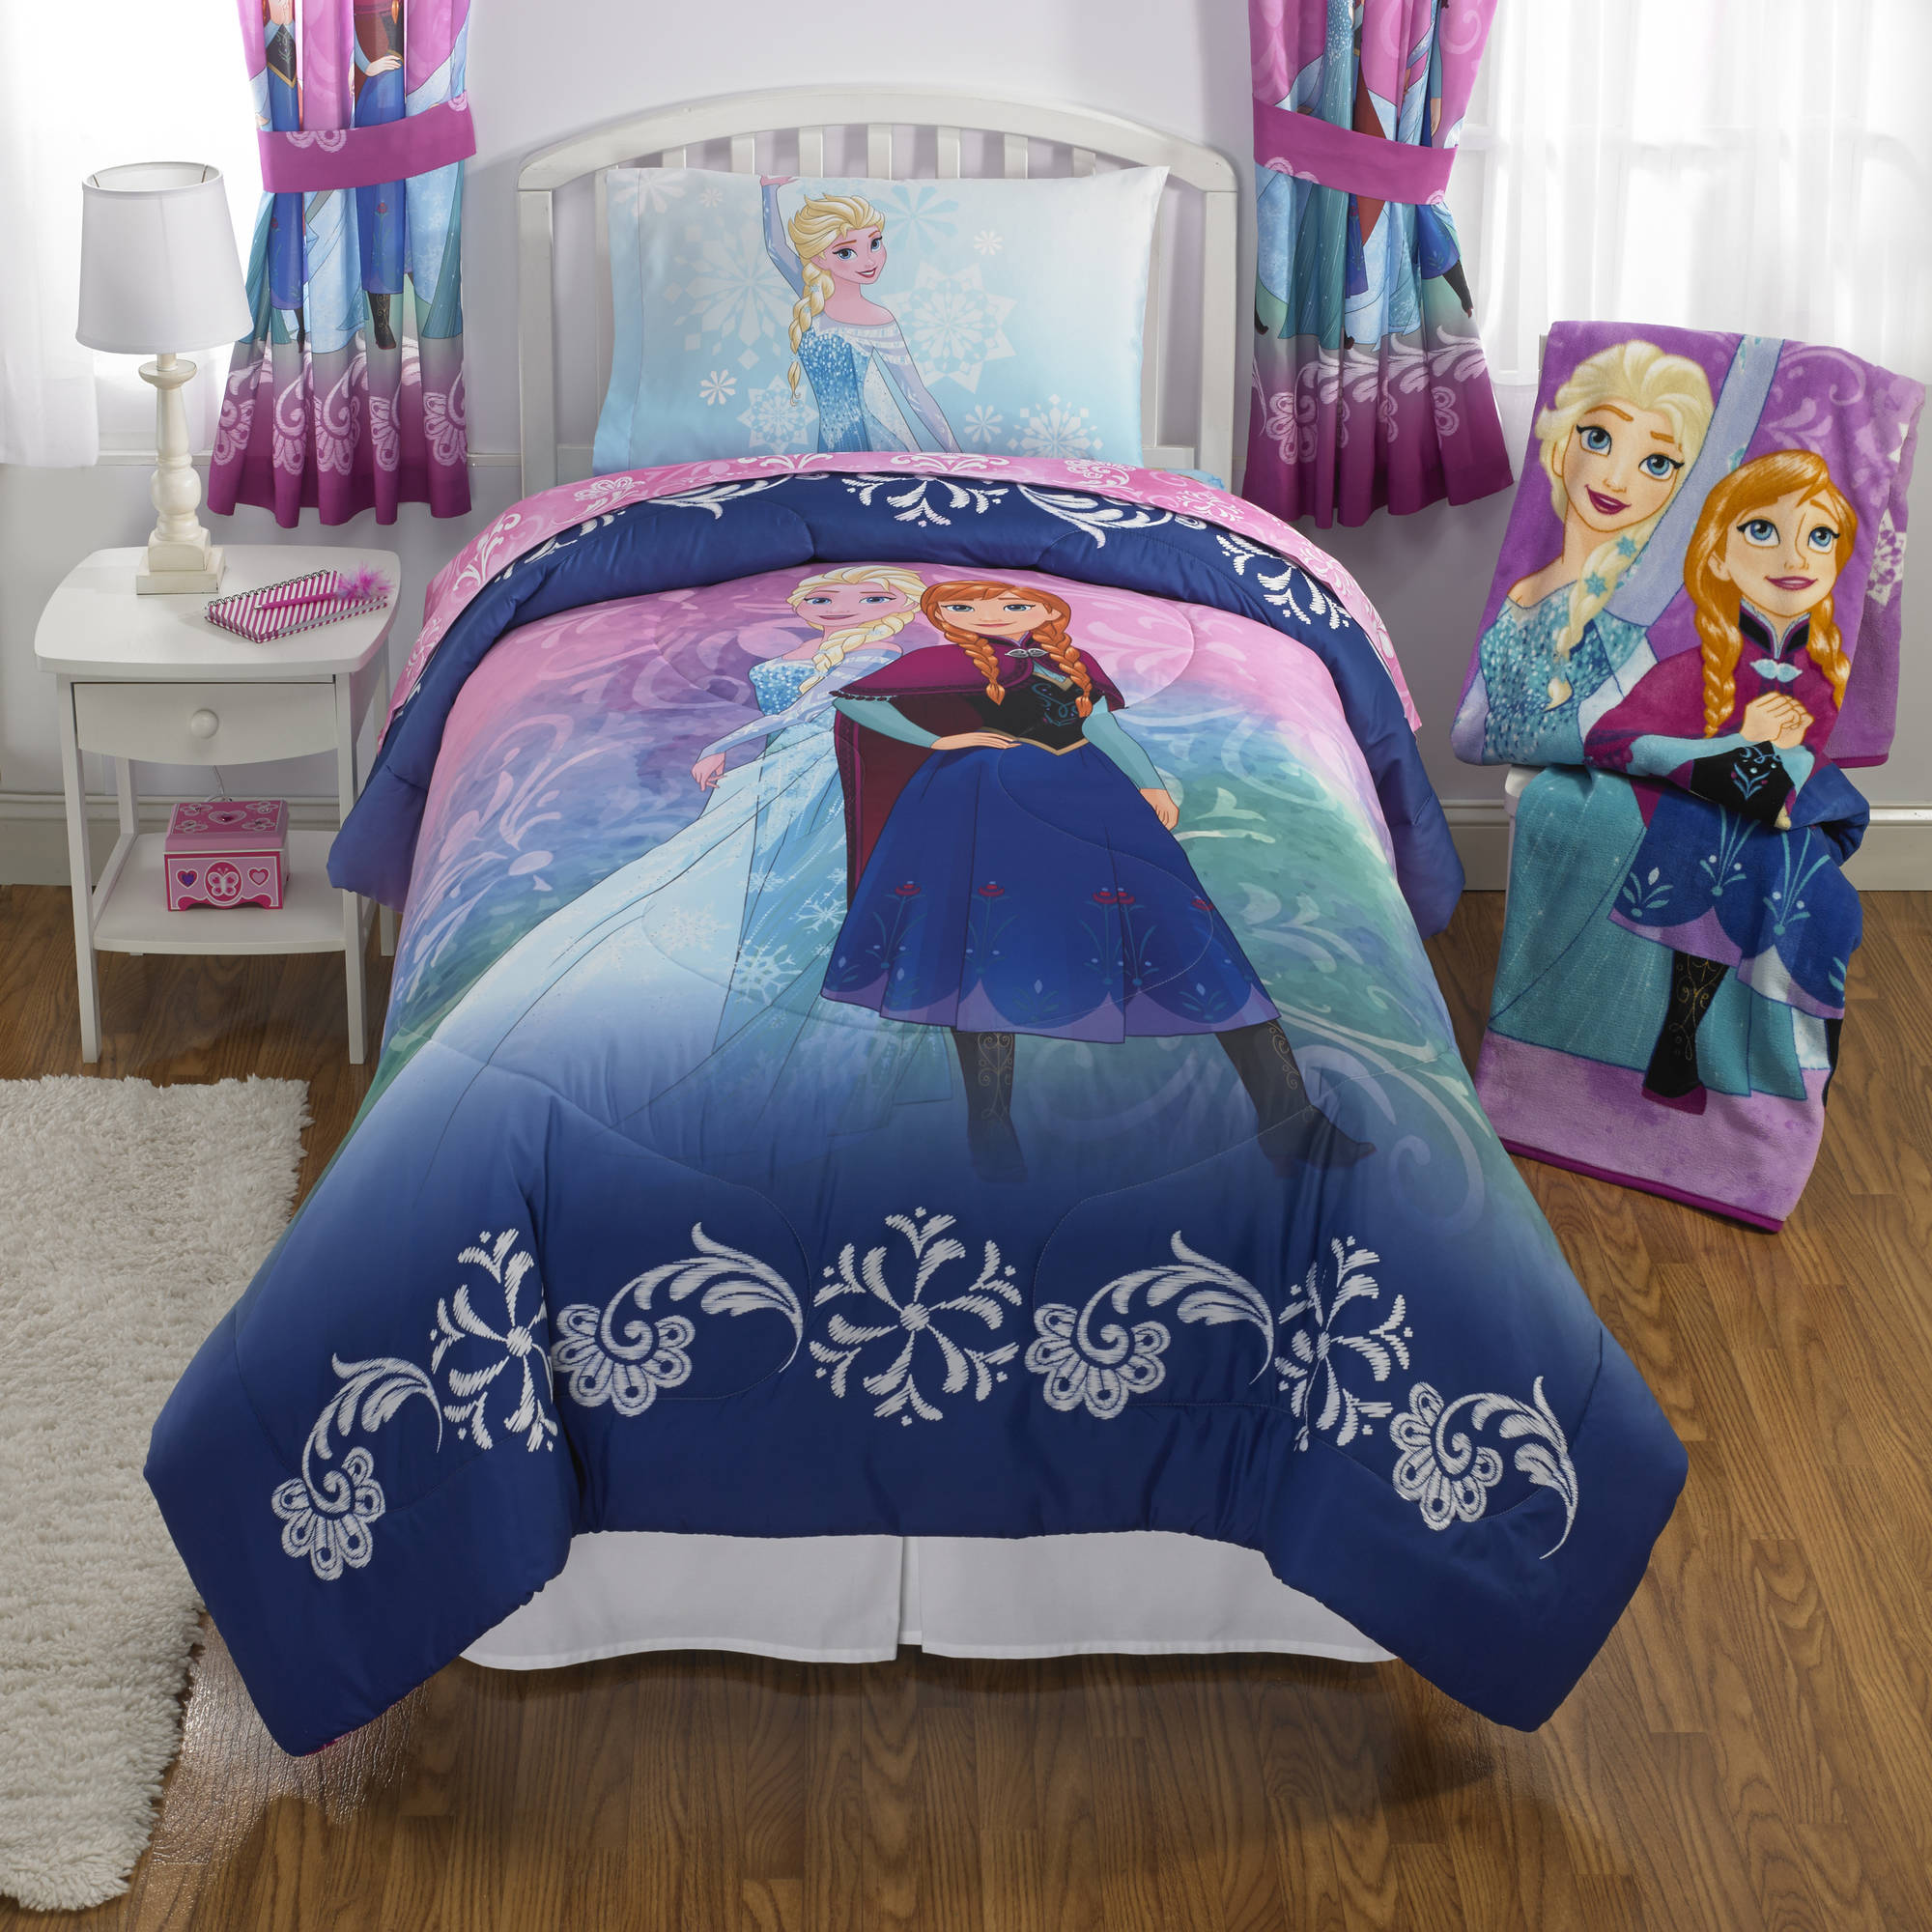 "Disney's Frozen ""Nordic Frost"" Twin/Full Bedding Comforter"